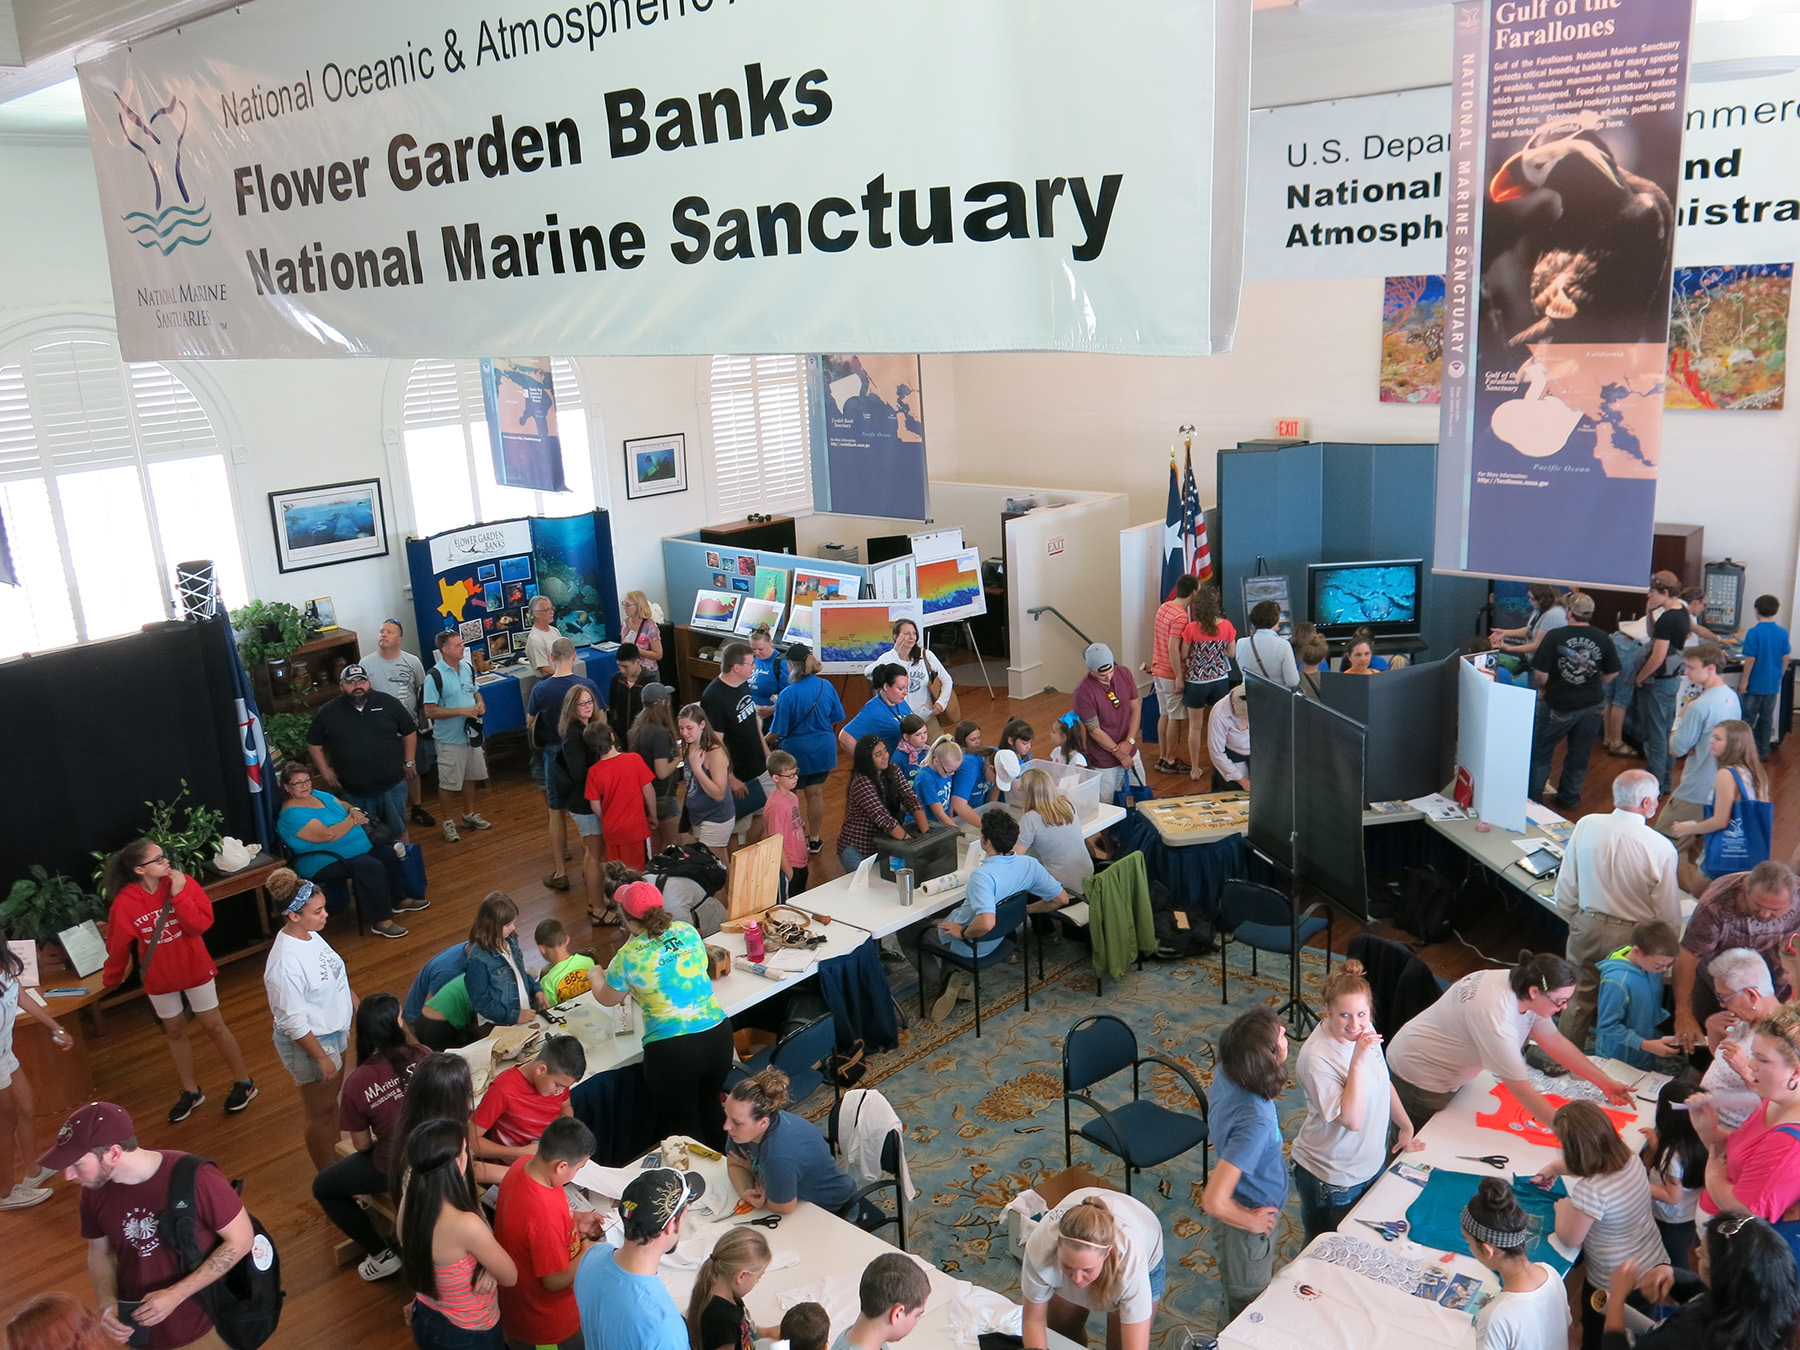 Noaa Ocean Discovery Day Flower Garden Banks National Marine Sanctuary